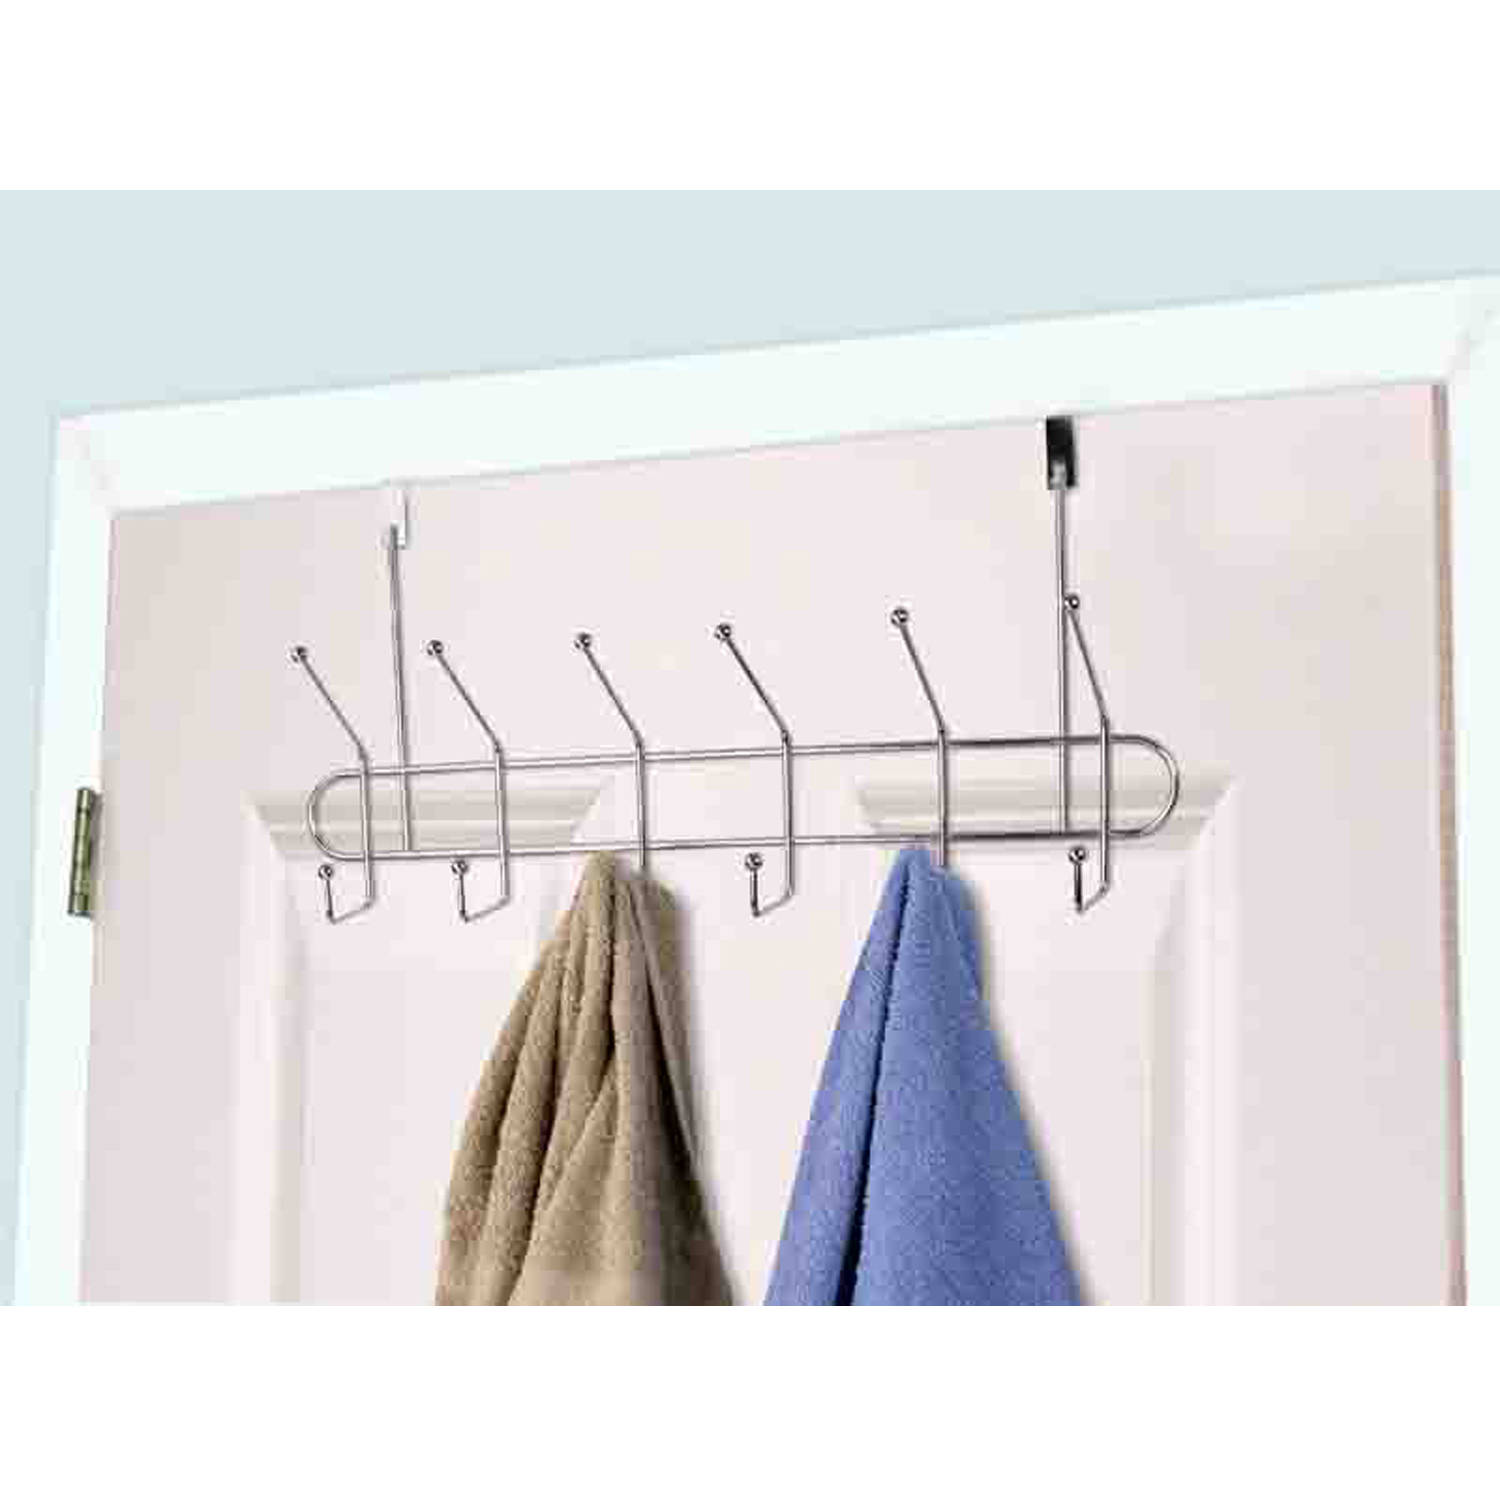 Home Basics Chrome-Plated Steel 6-Hook Over-the-Door Hanging Rack